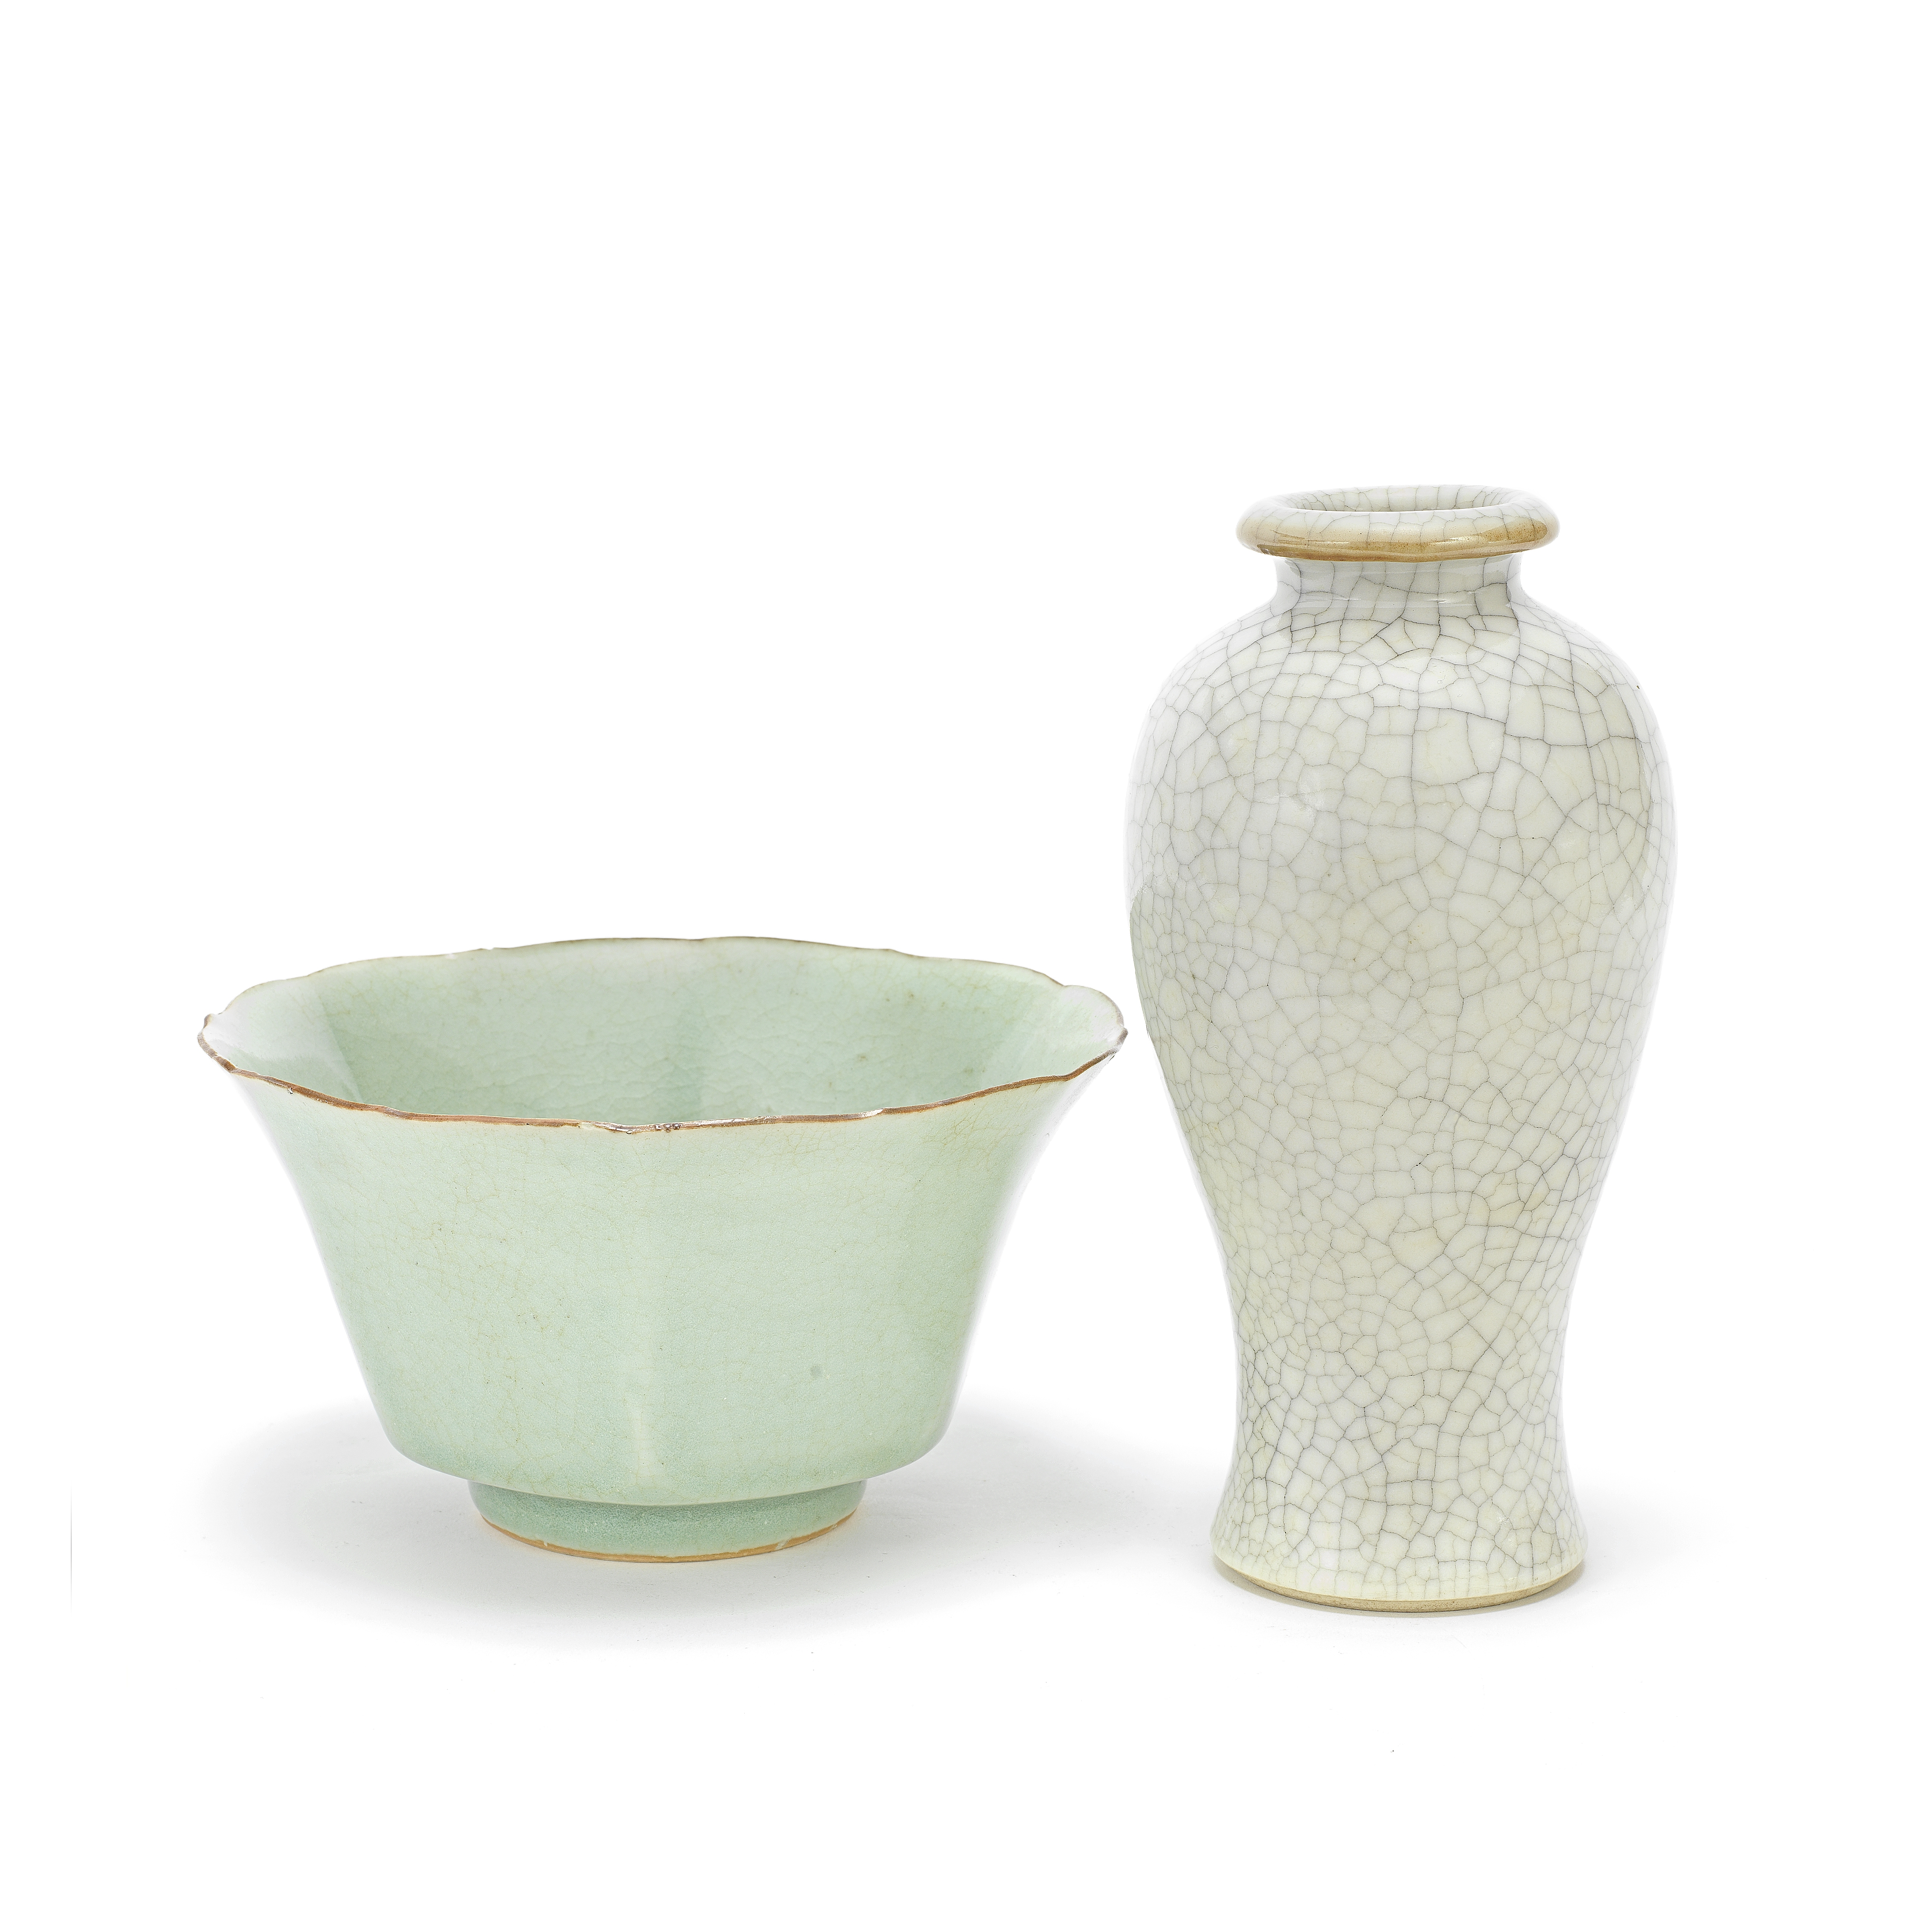 A CELADON-GLAZED LOBED BOWL AND A GE-TYPE VASE, MEIPING 18th century (2)